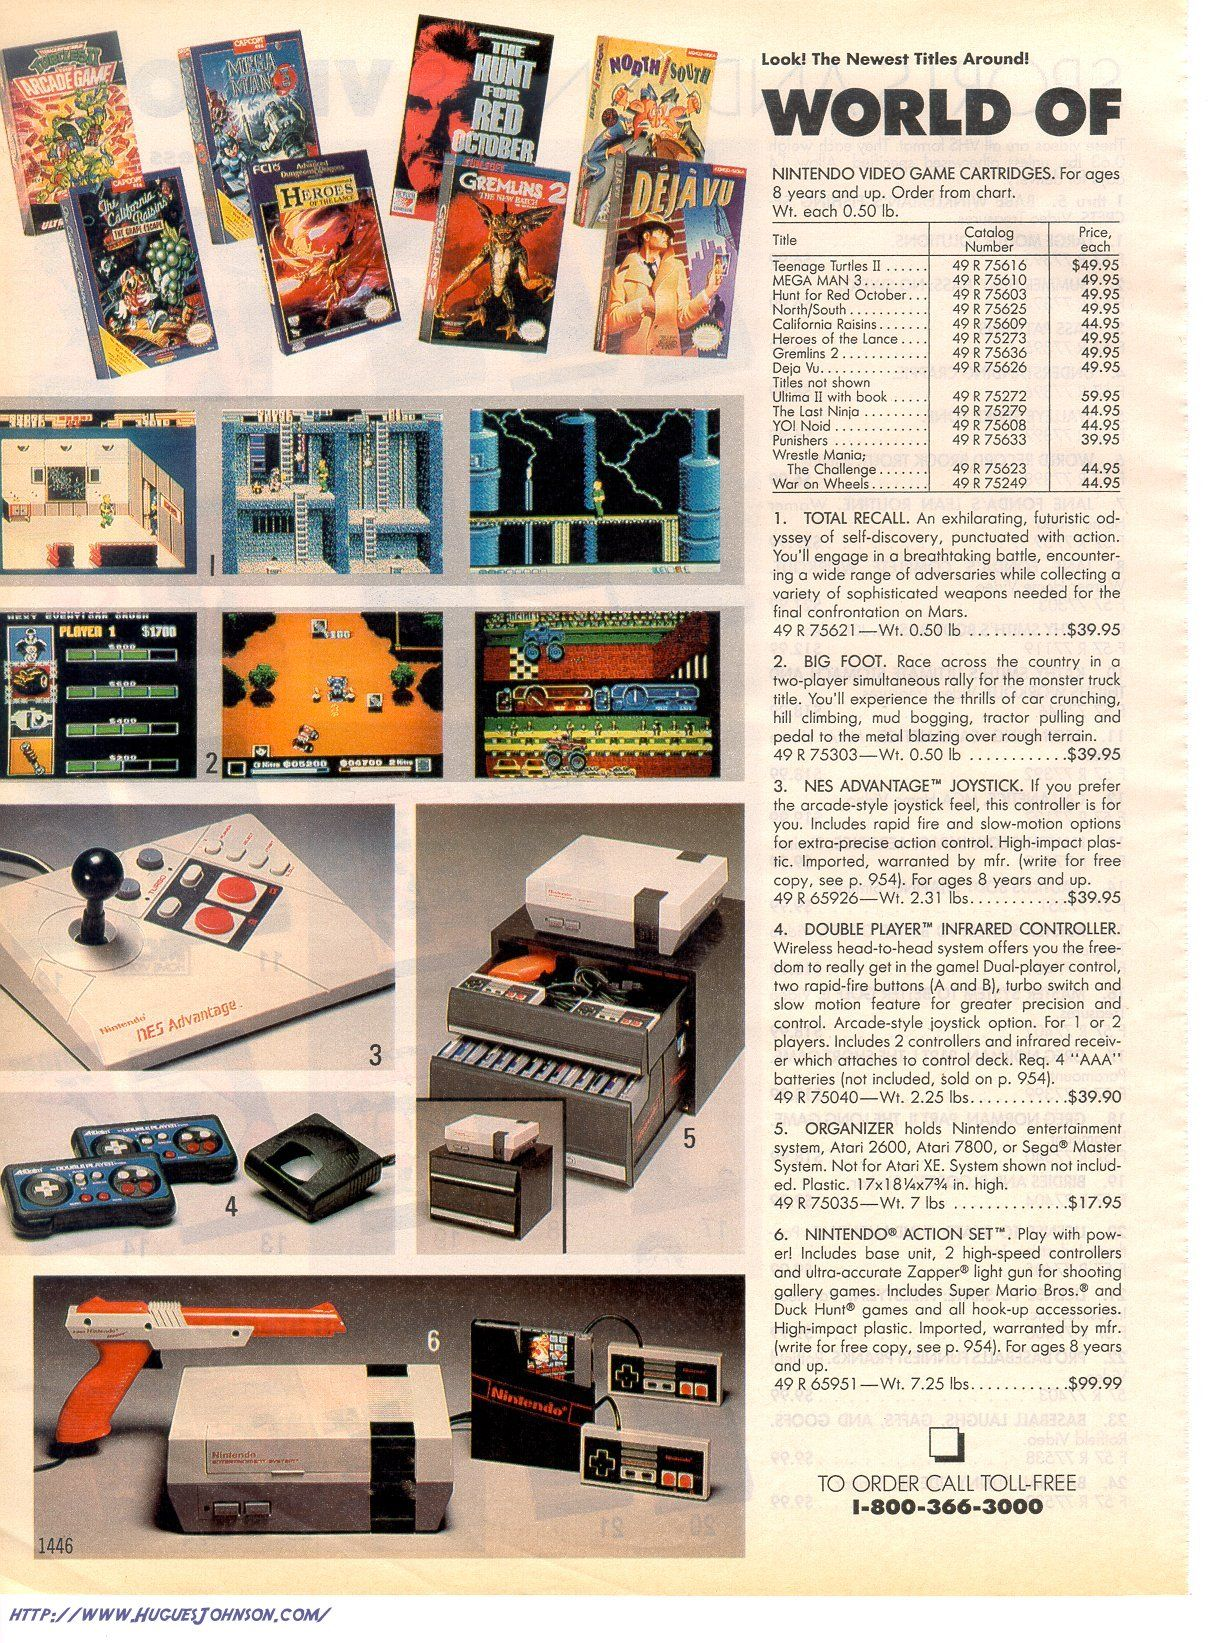 Nintendo in Sears Catalog for Christmas with year kicked off a new era in content marketing.   My Dad somehow got us one that first Christmas of Nintendo and the hunt was on for games!